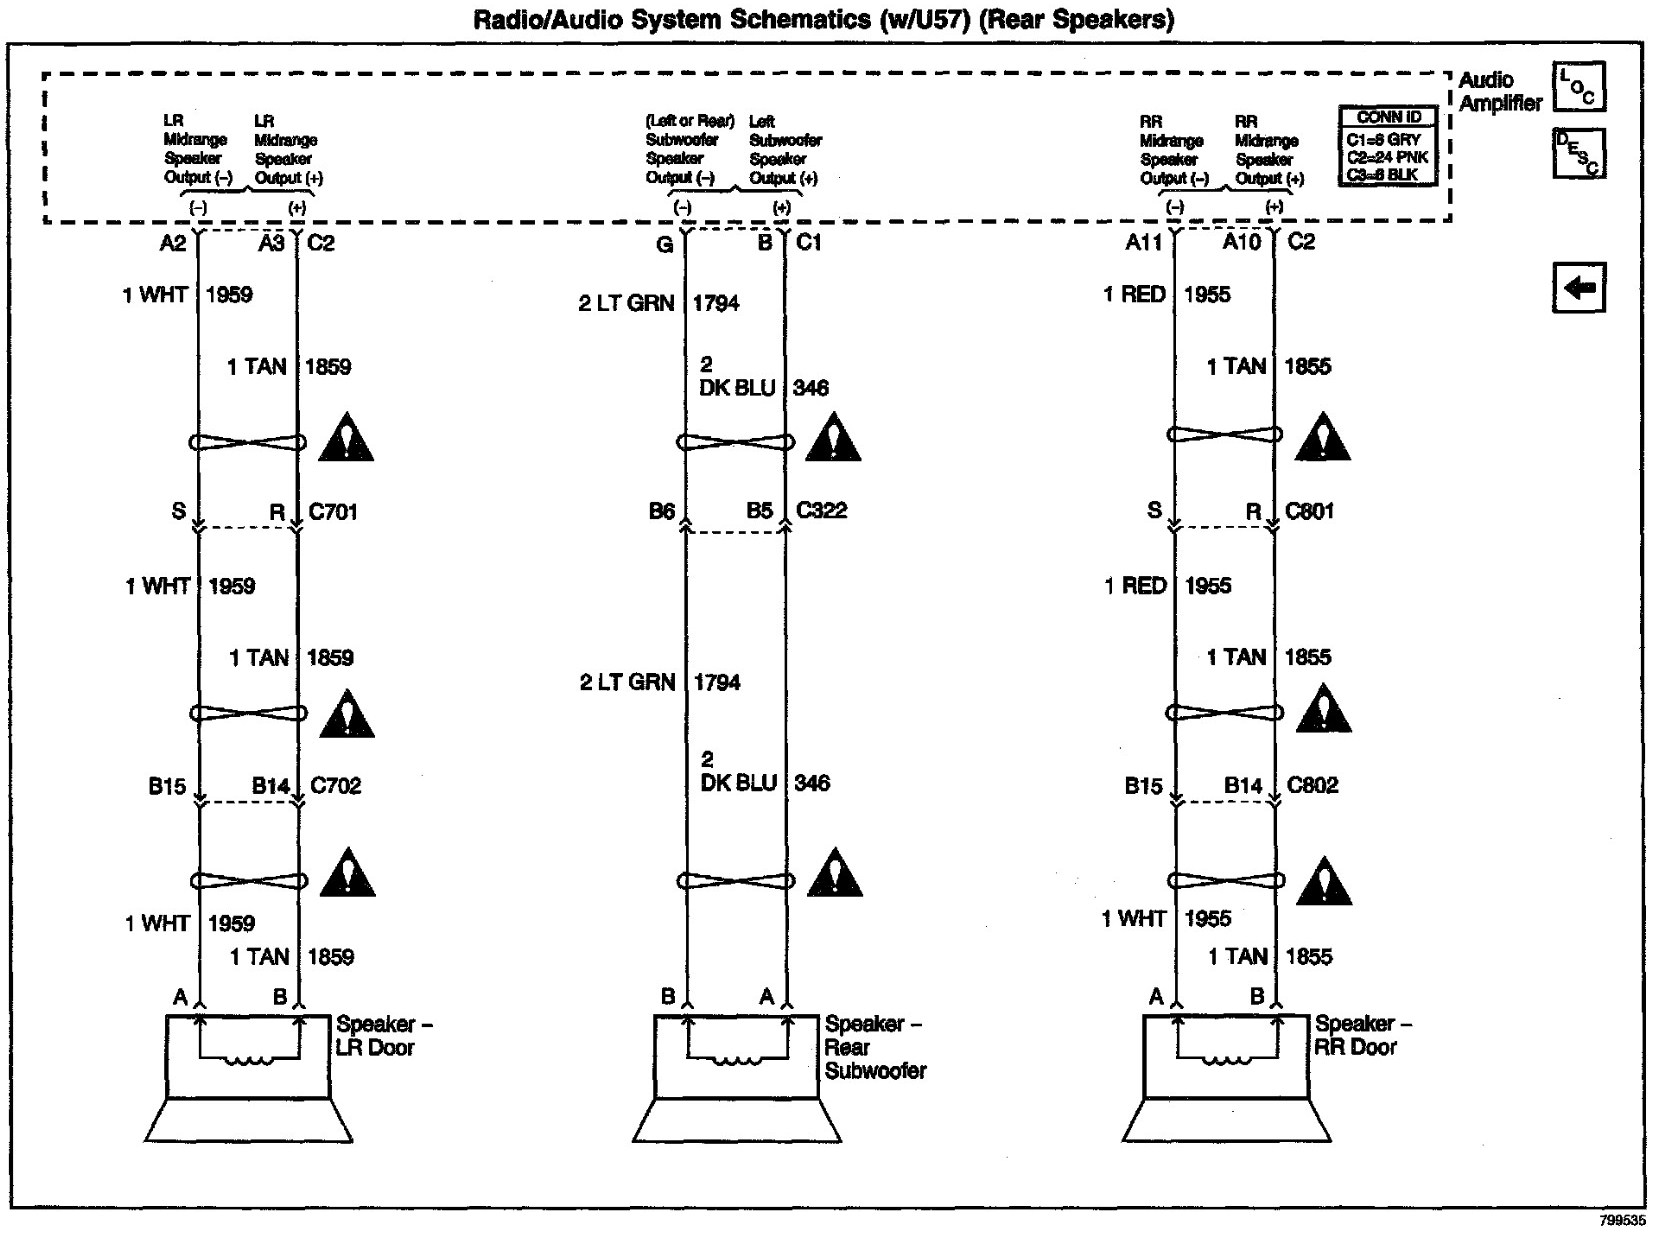 1977 Cadillac Headlight Wiring Diagram 2007 Escalade Parts Sc300 Engine Bay For Free On